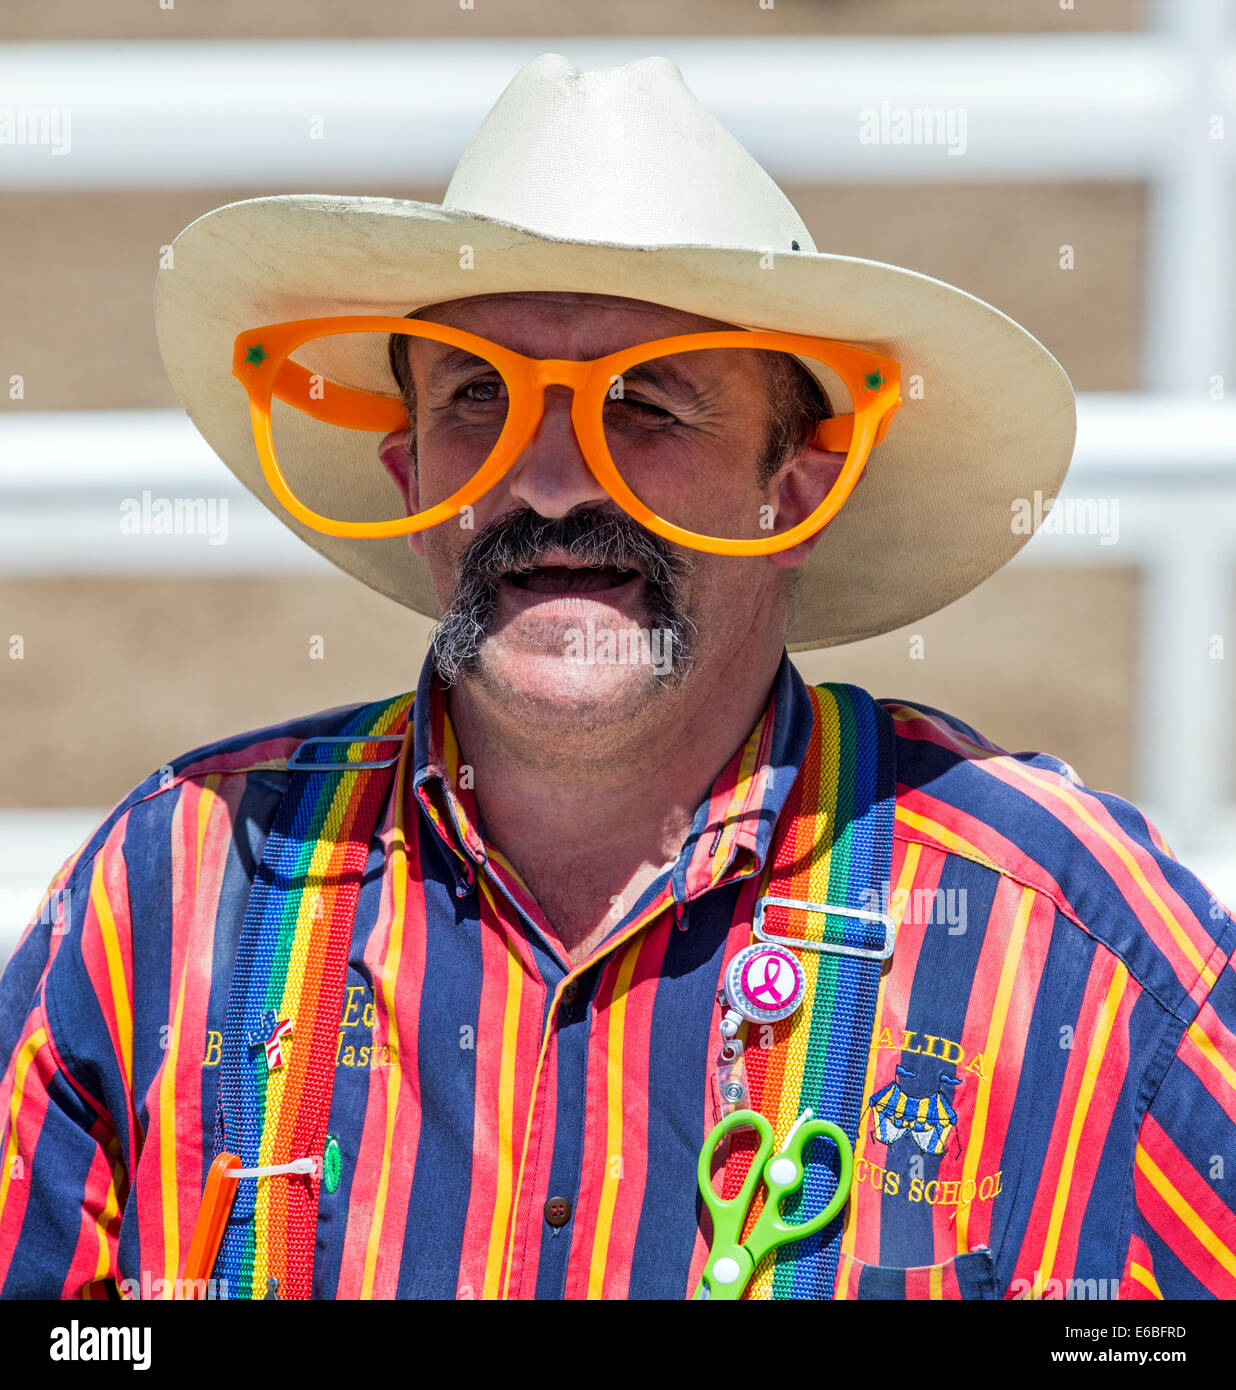 Clown, Chaffee County Fair & Rodeo, Central Colorado, USA - Stock Image